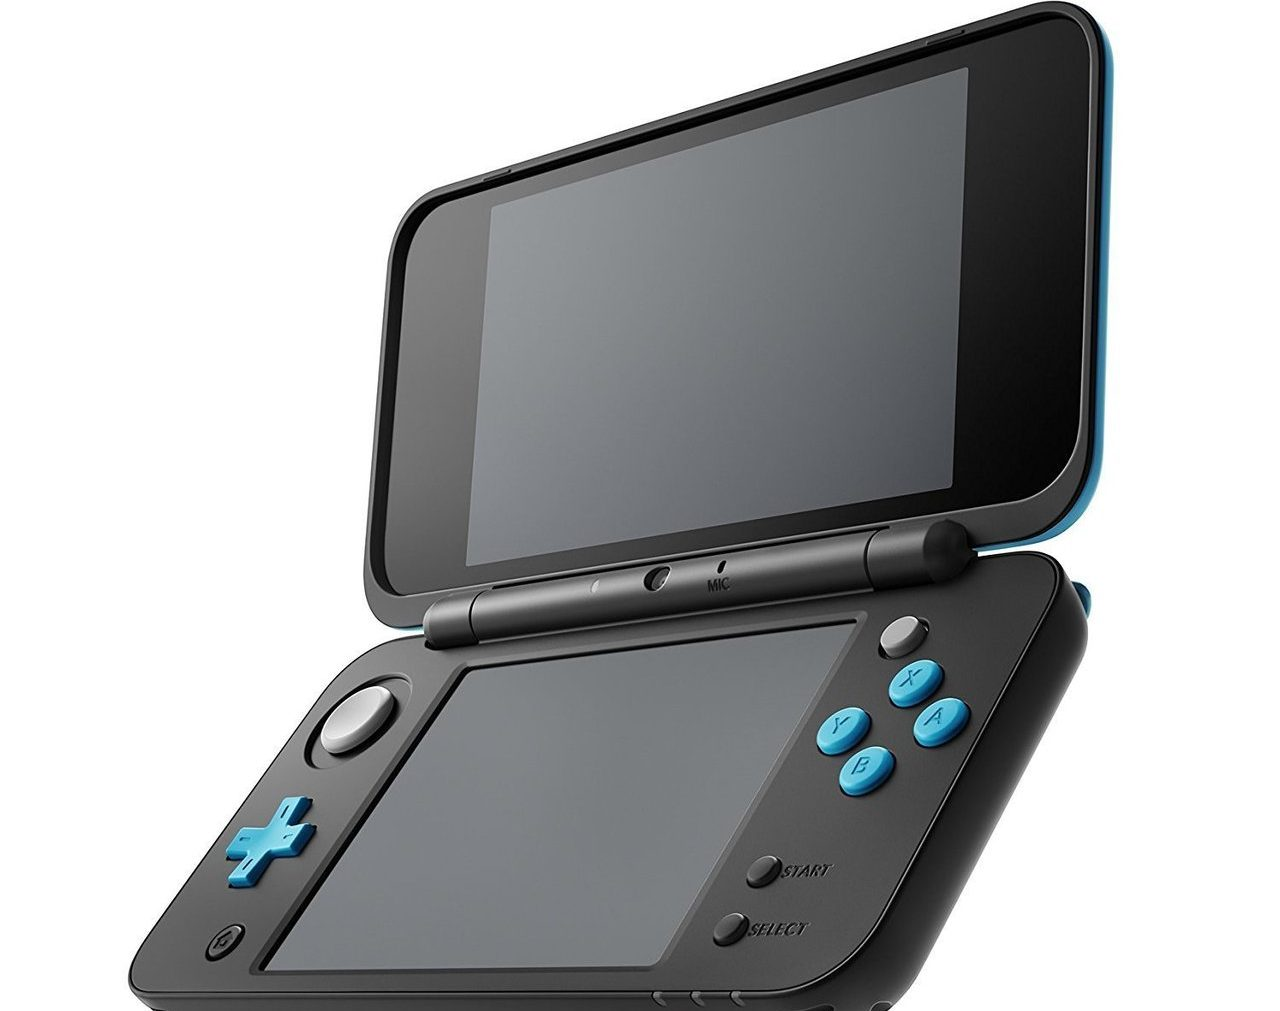 5 Things To Know About the New Nintendo 2DS XL